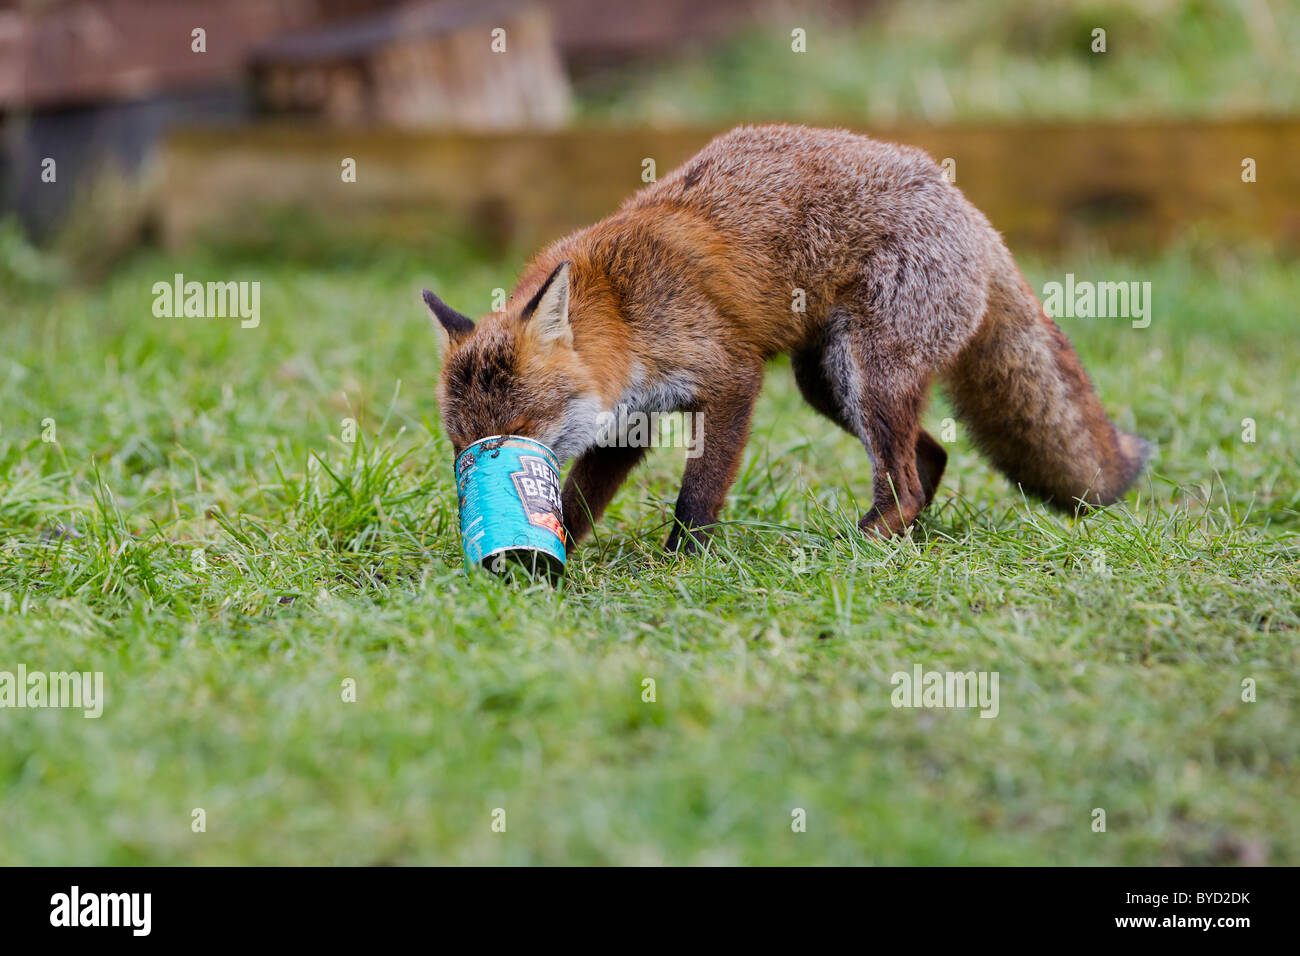 Red Fox ( Vulpes vulpes ) scavenging can from dustbin - Stock Image